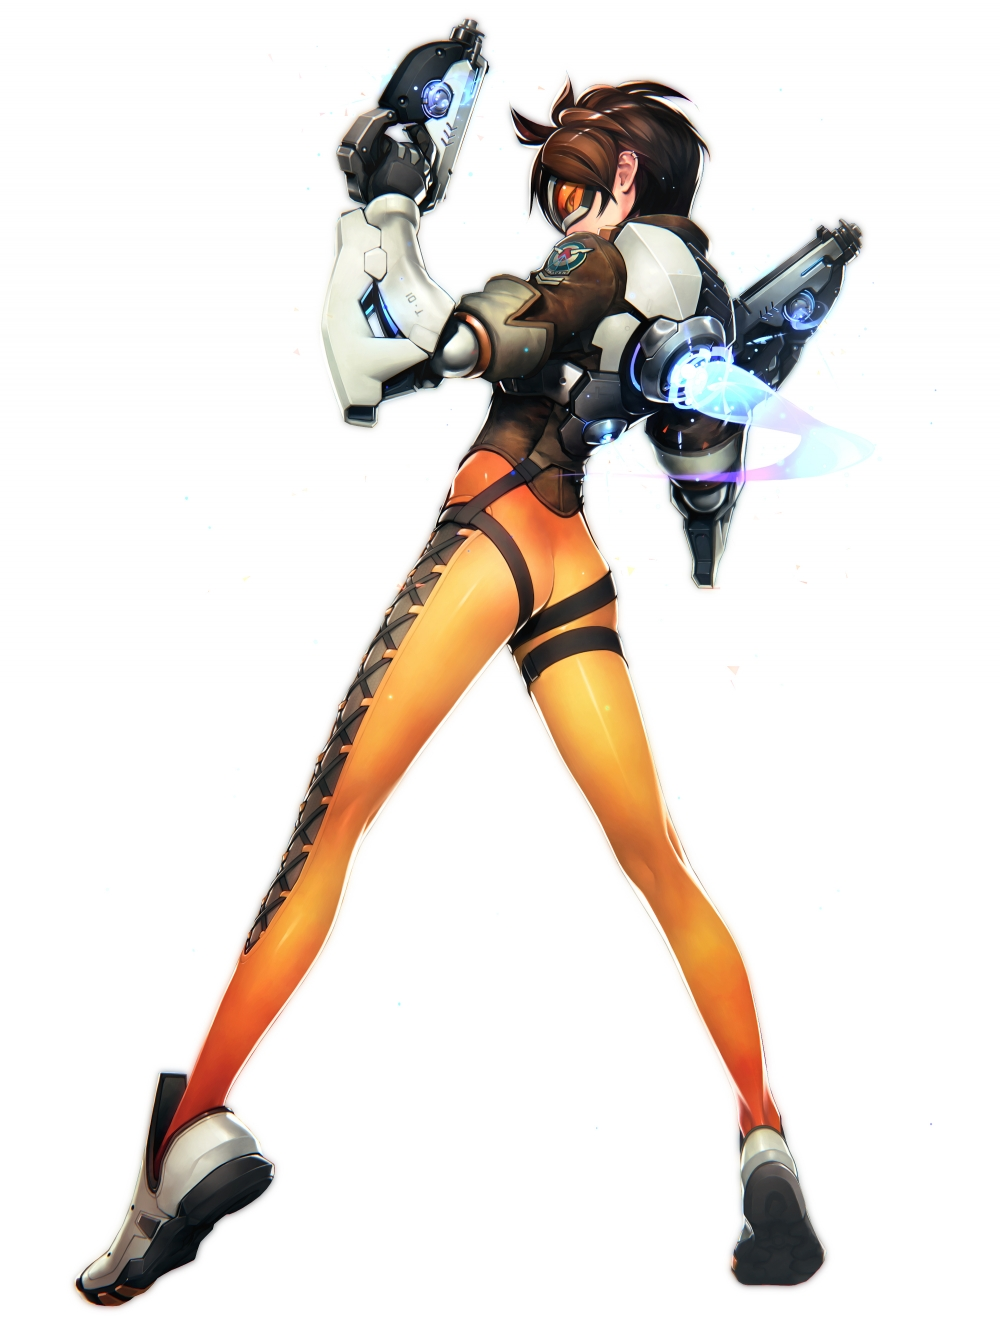 Wallpaper For Iphone 4s Black Wallpaper Overwatch Tracer Bodysuit Guns Back View